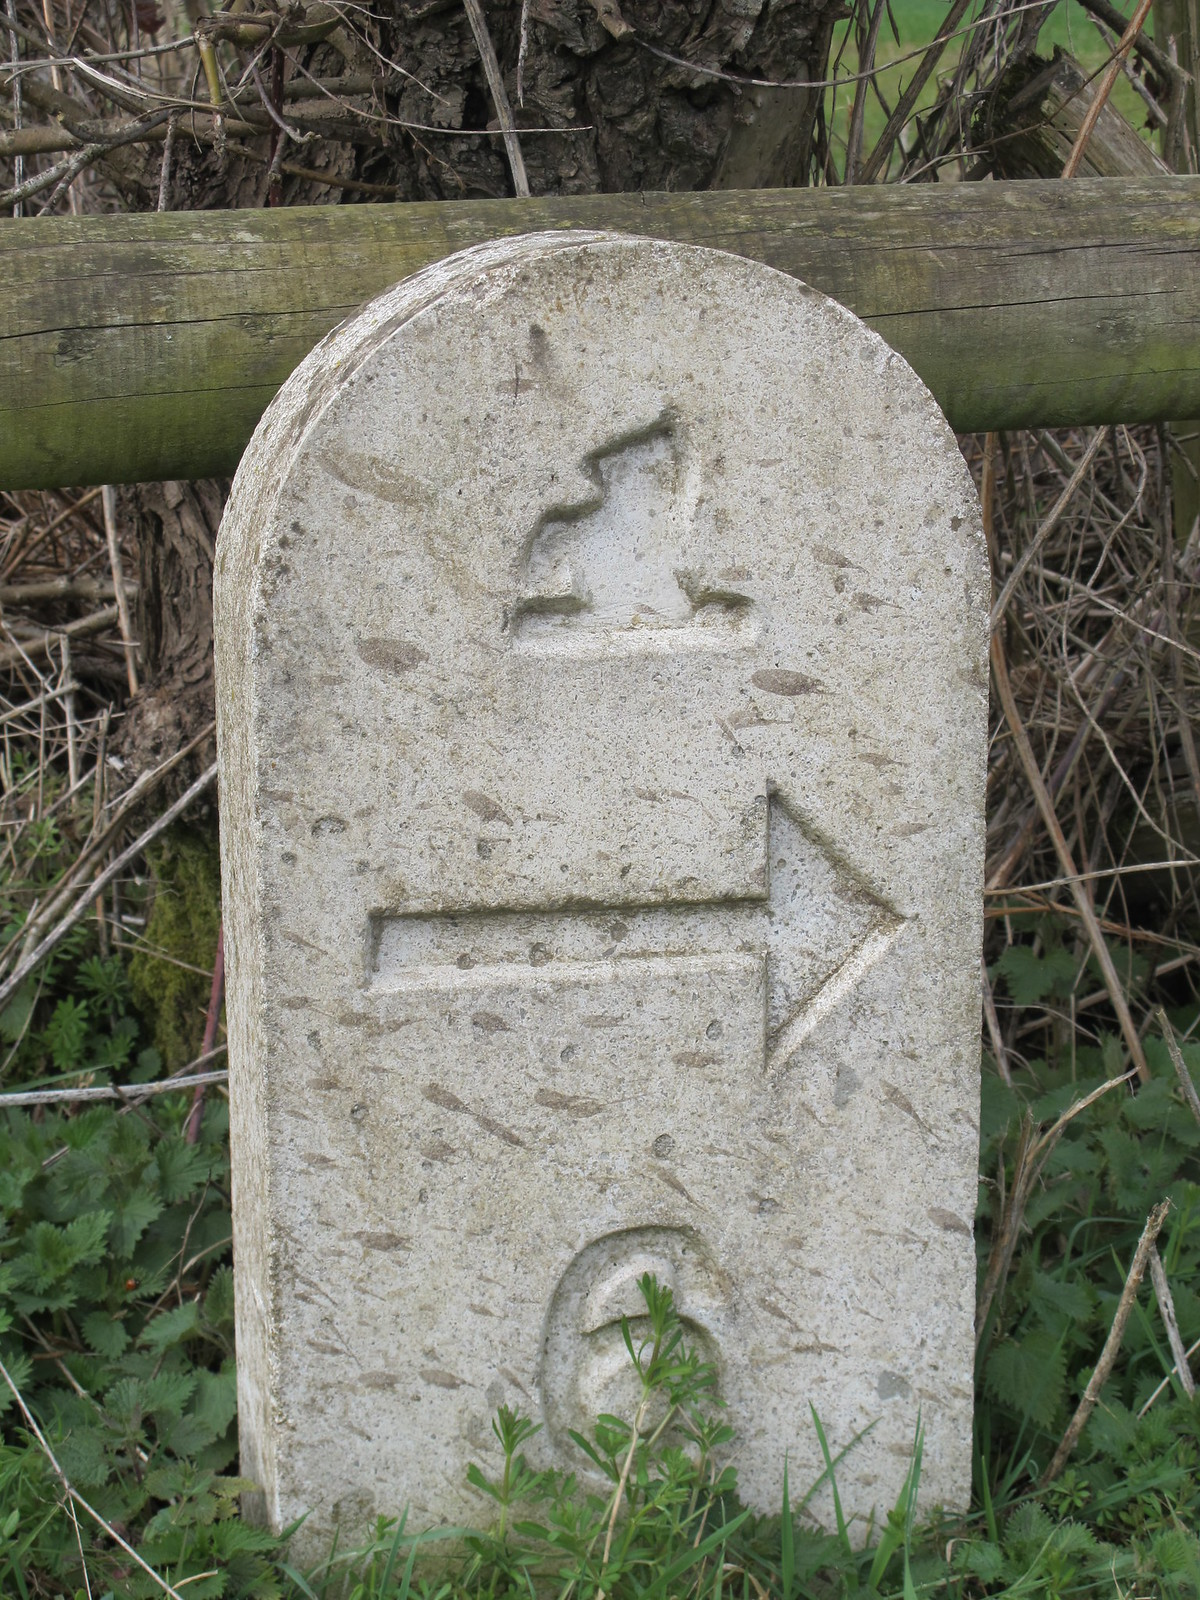 Mottisfont Estate Path Marker Stone 6 SWC Walk 58 Mottisfont and Dunbridge to Romsey taken by Karen C.